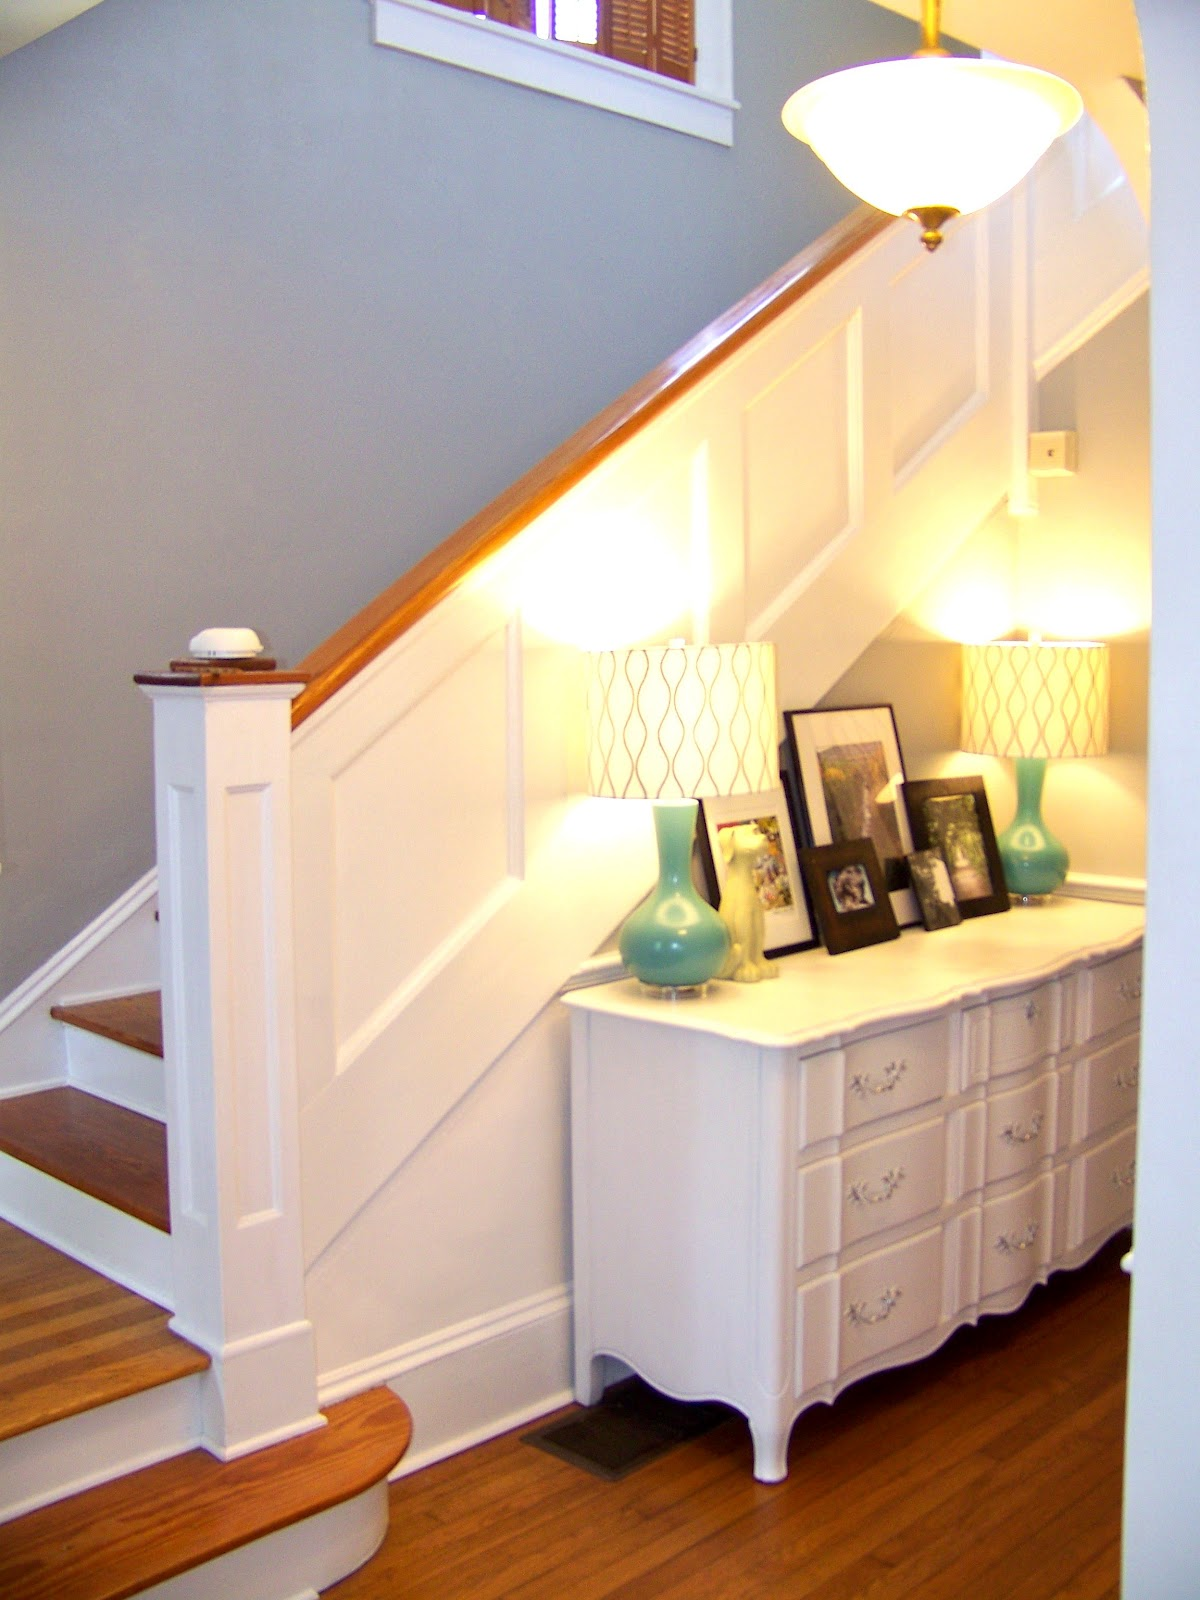 Nice Valspar Paint to Make Your Home Look Beautiful: Valspar Paint Color Palette | Valspar Ultra White Paint | Valspar Paint